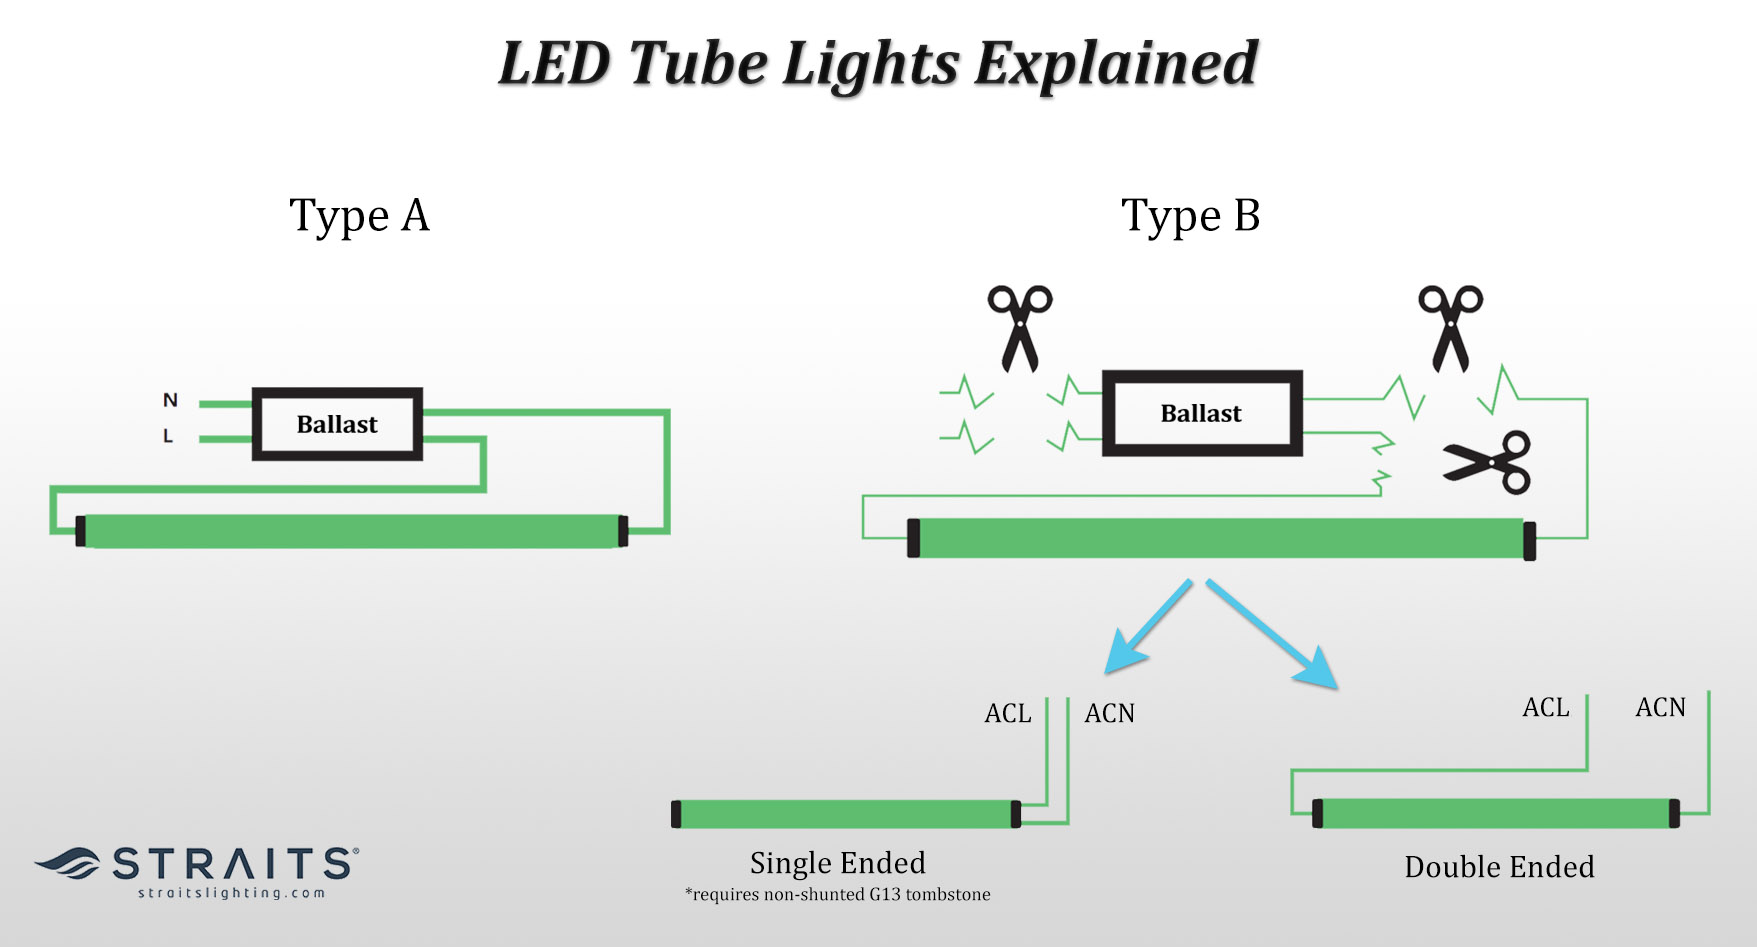 A diagram showing the installation difference between type A and type B LED tube lights